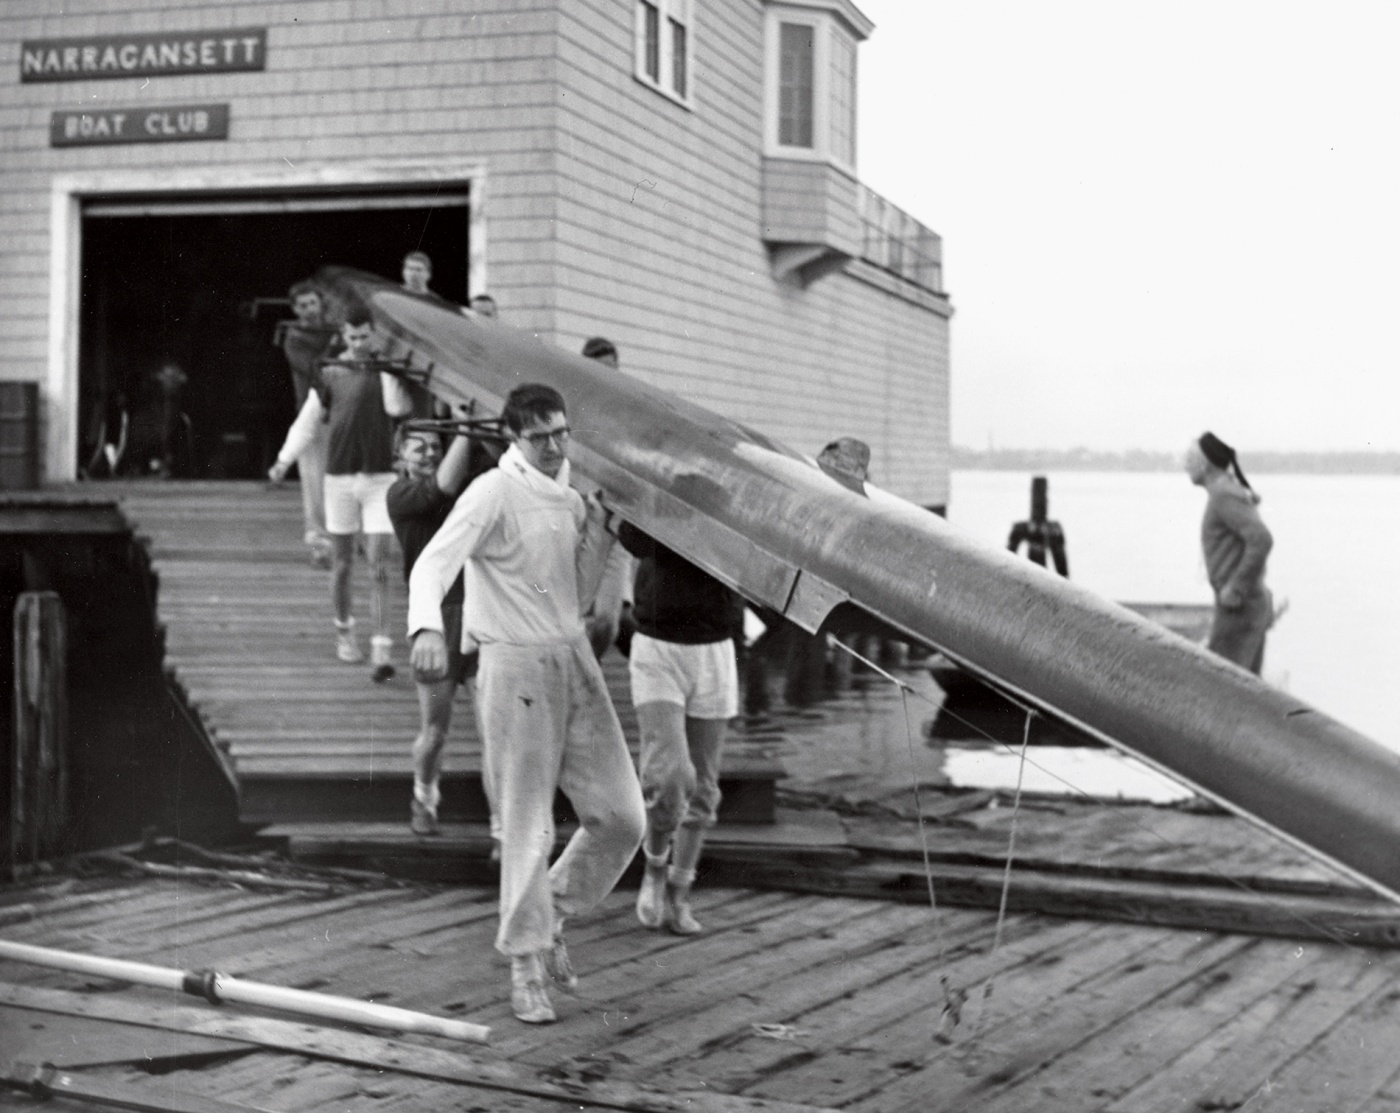 Rowing team in 1961 on Narragansett Dock